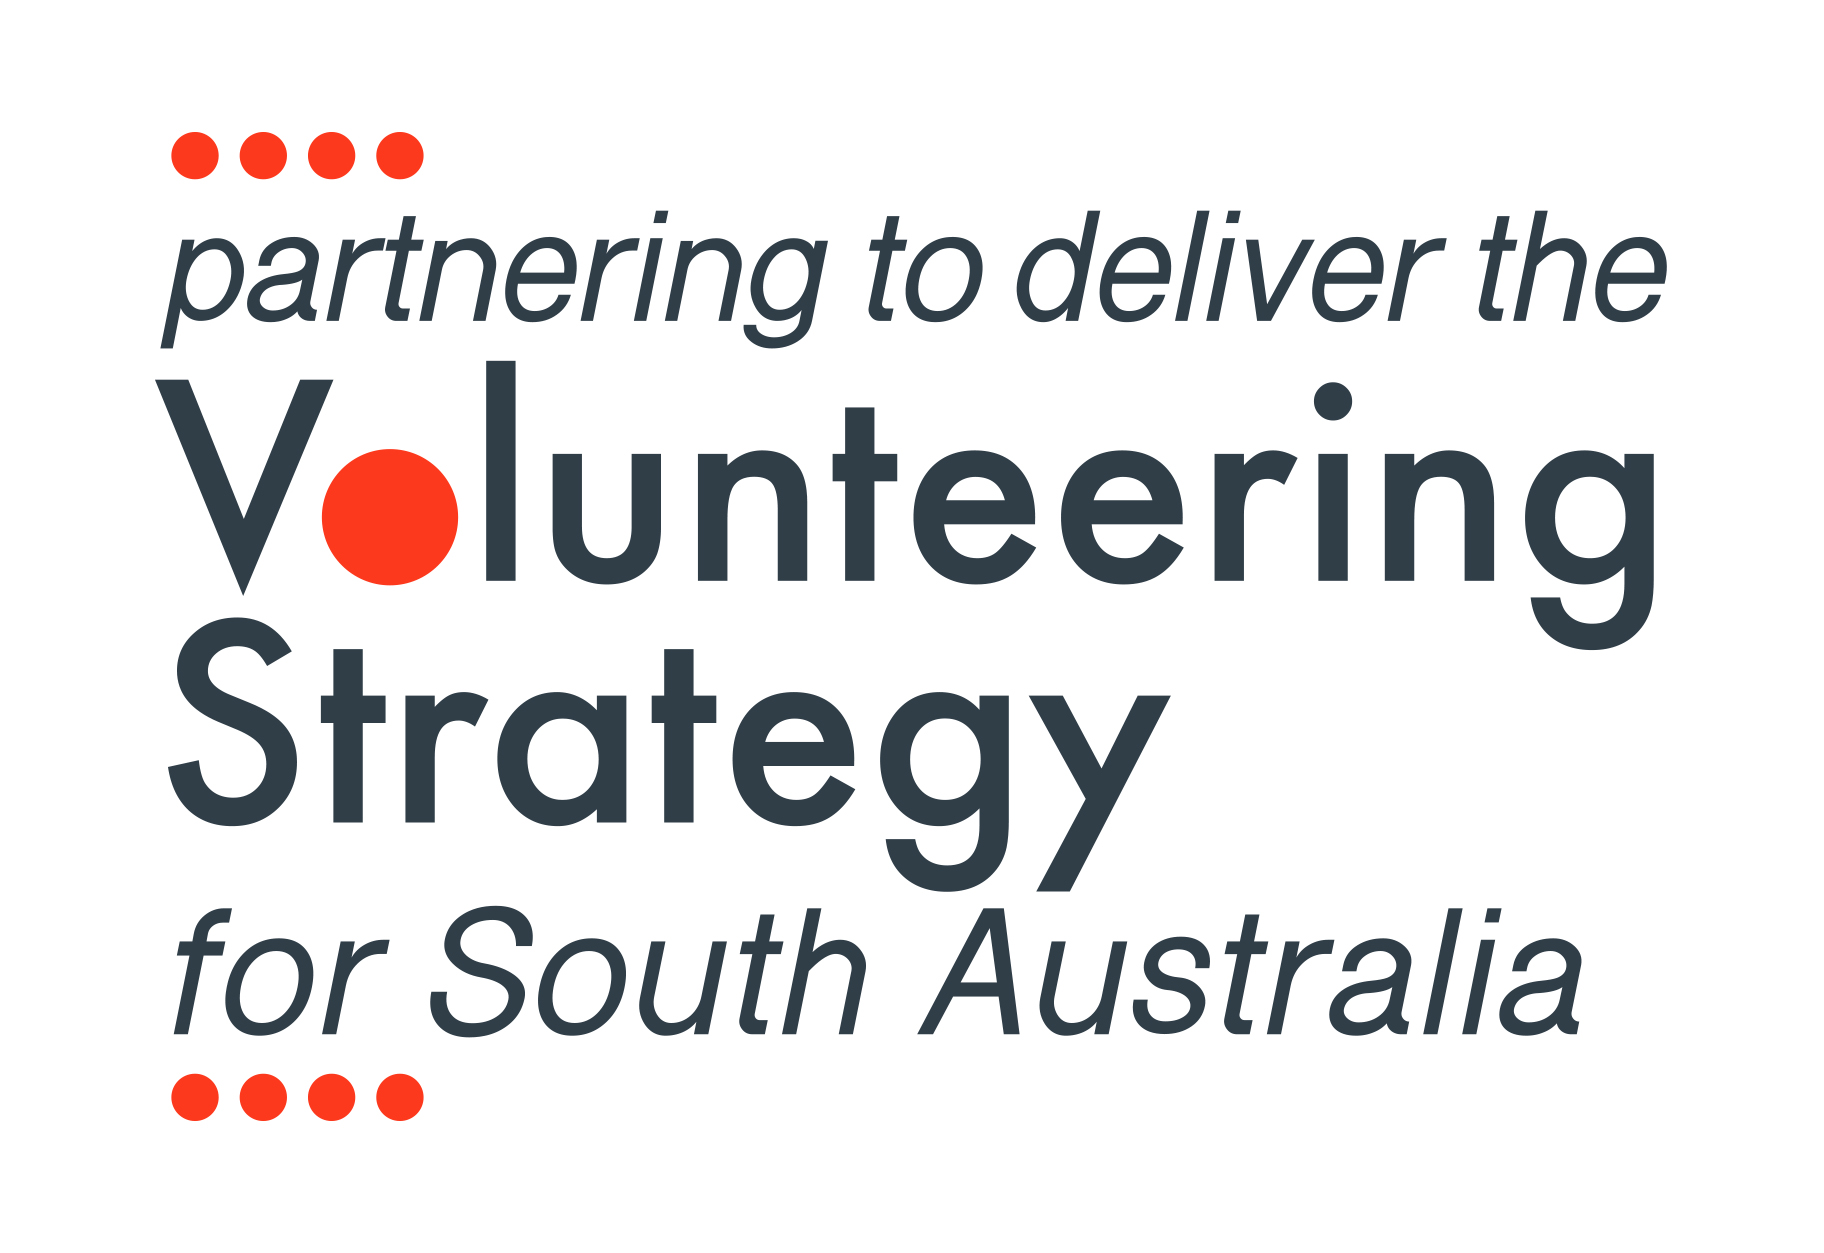 Volunteering Strategy for South Australia